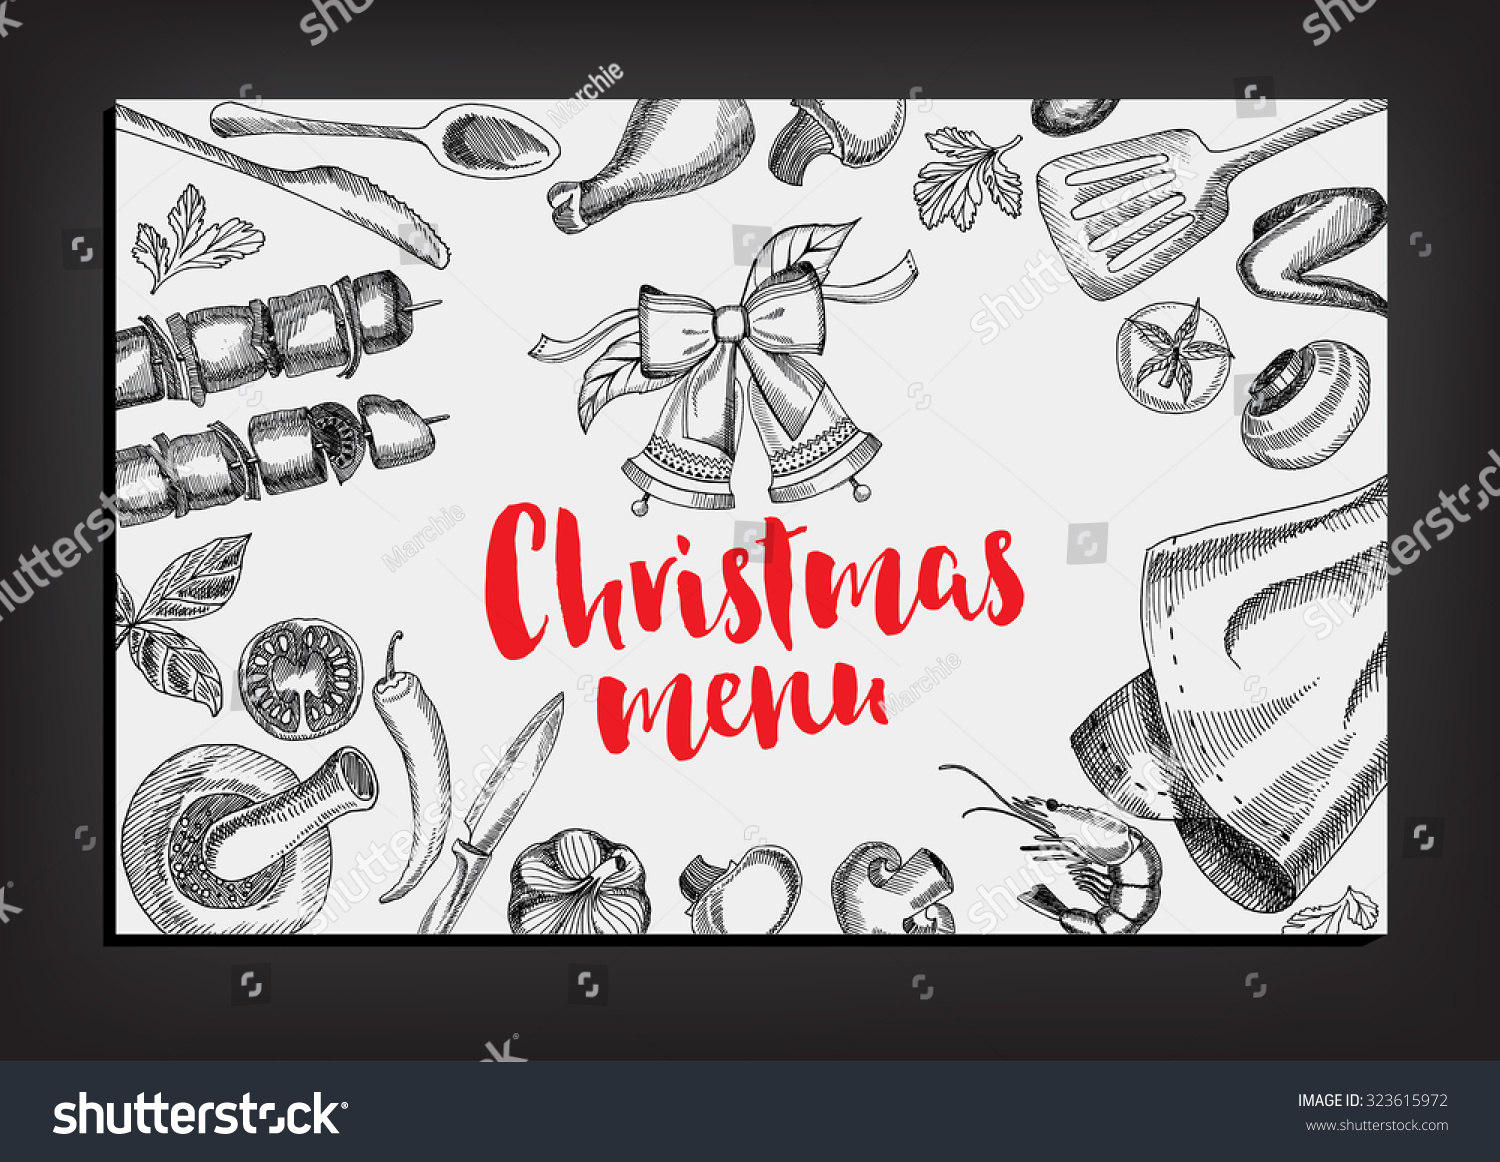 Christmas party invitation restaurant menu design stock vector christmas party invitation restaurant menu design stock vector 323615972 shutterstock stopboris Image collections